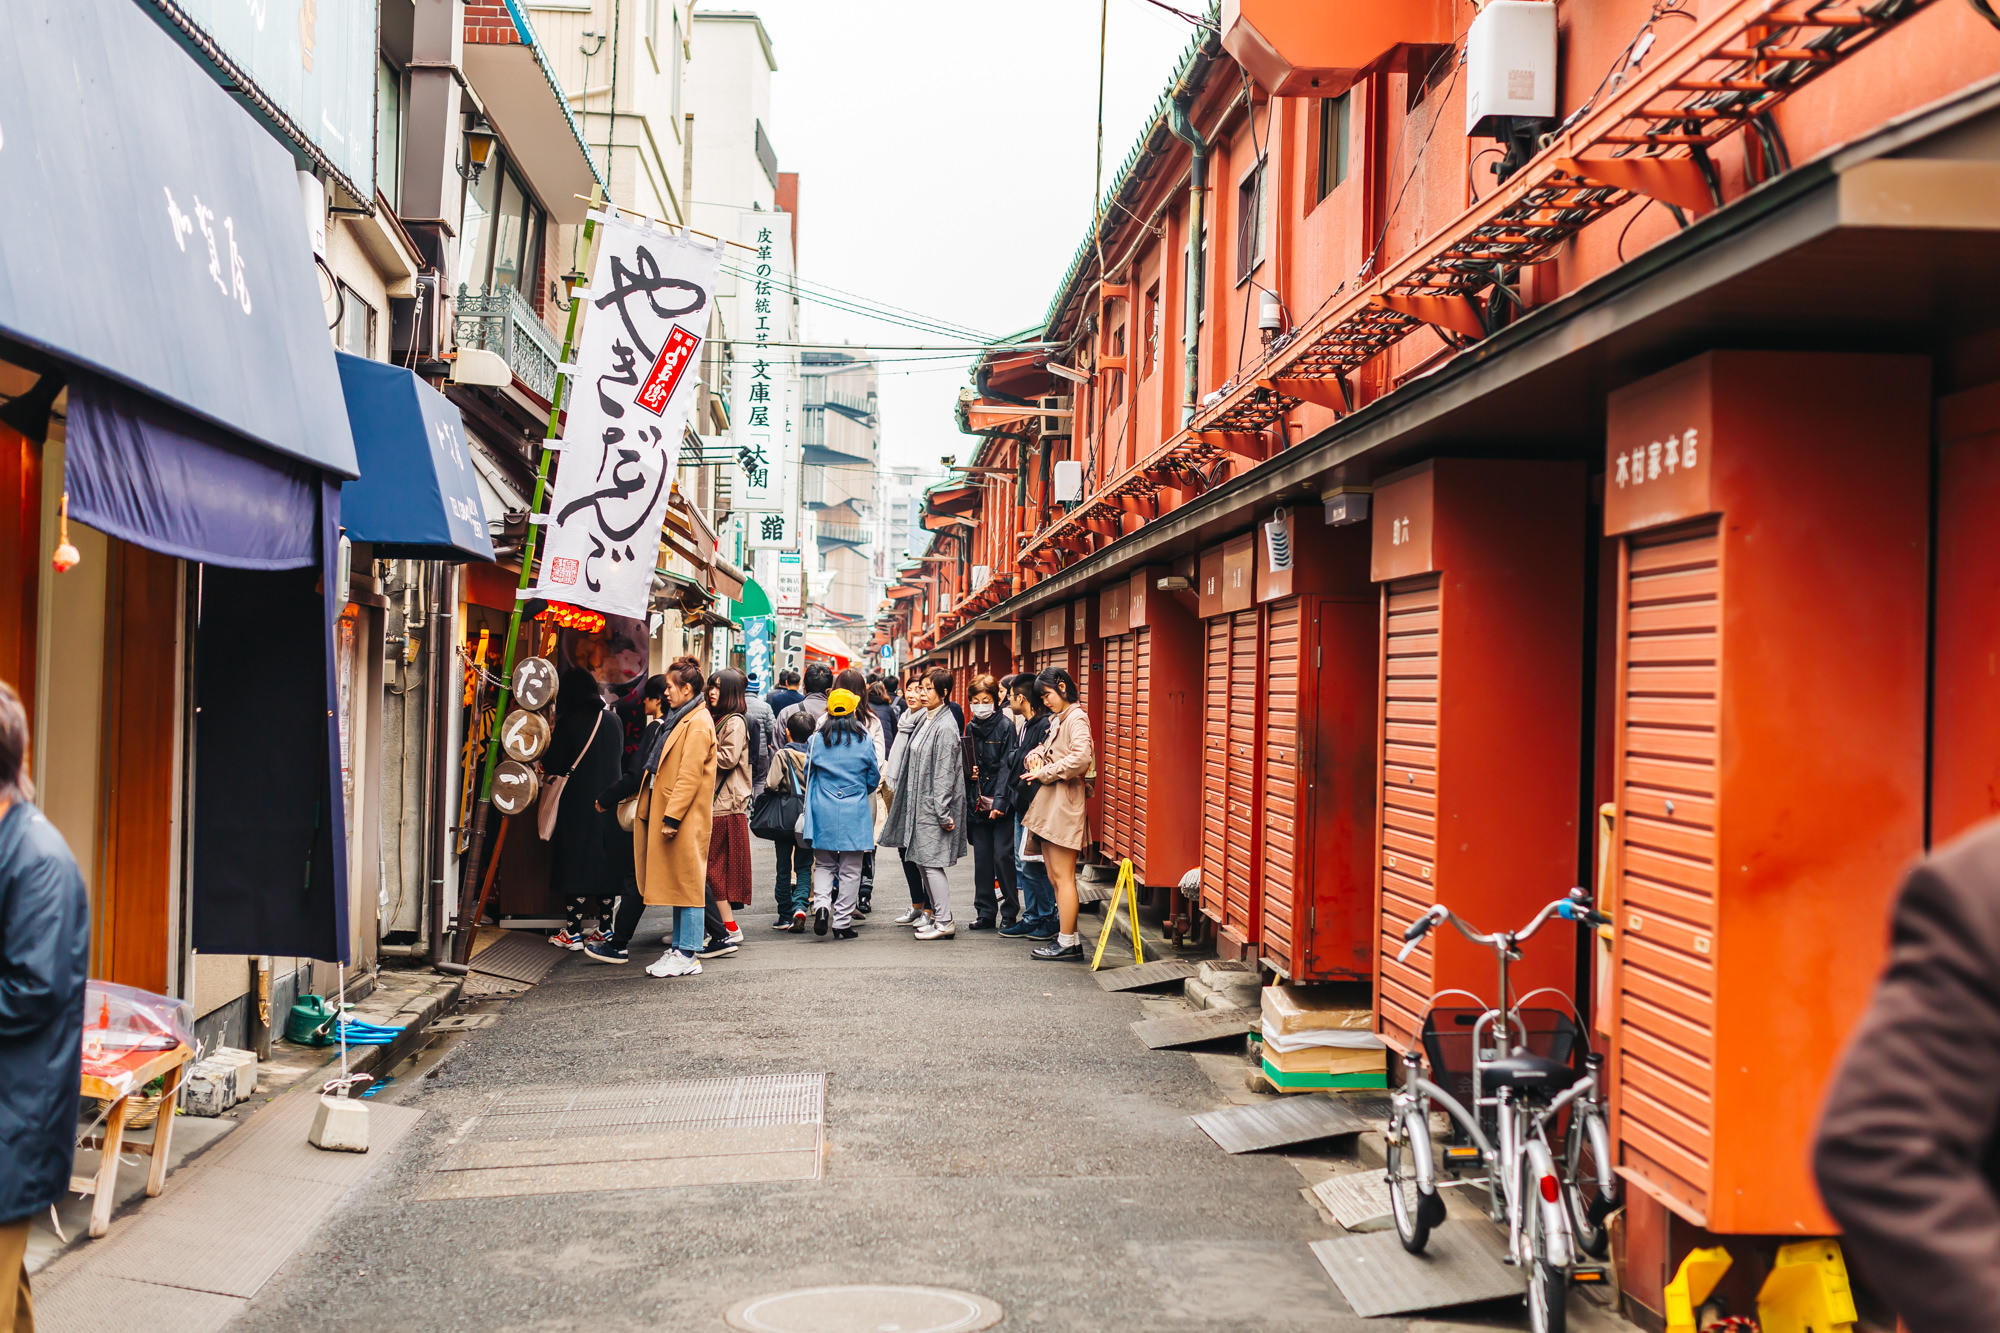 The back alley of Nakamise Shopping Street